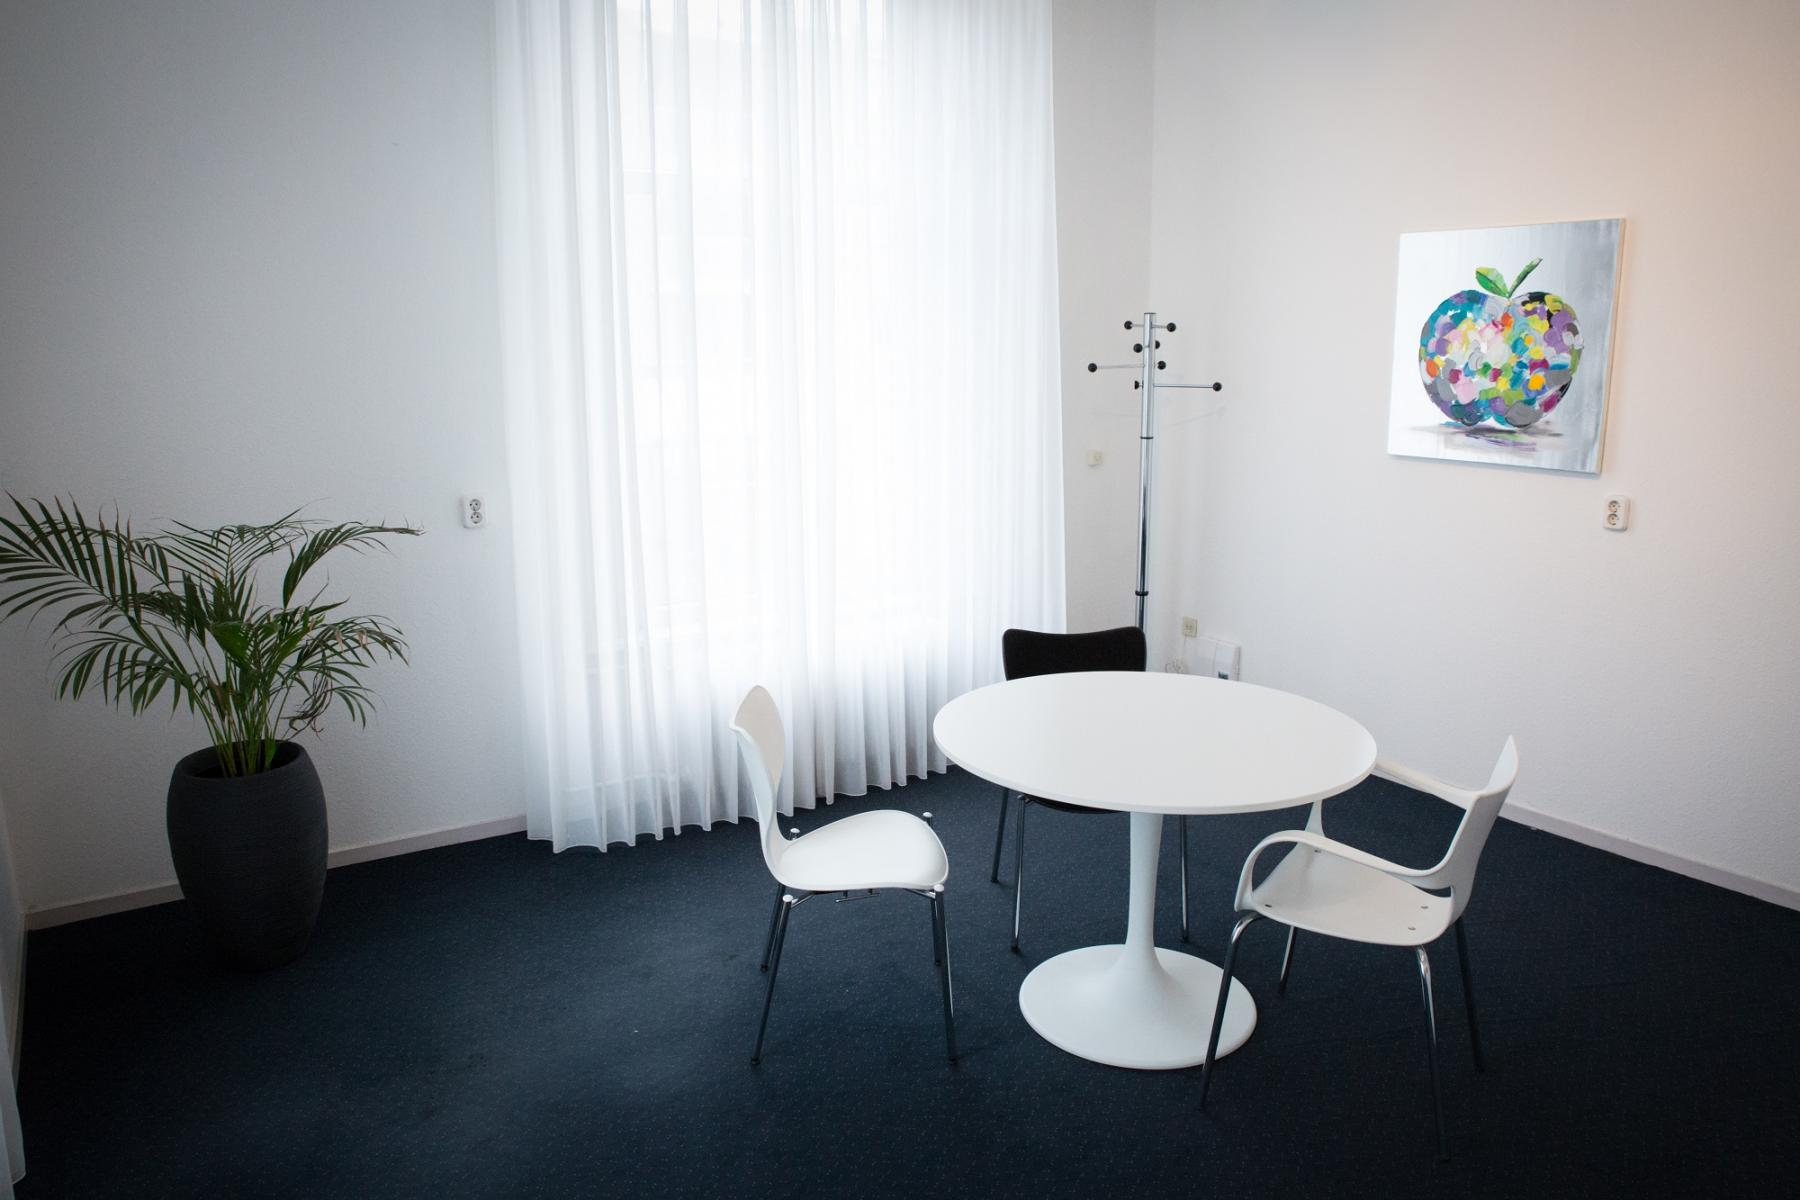 small office room with four chairs and a nice painting